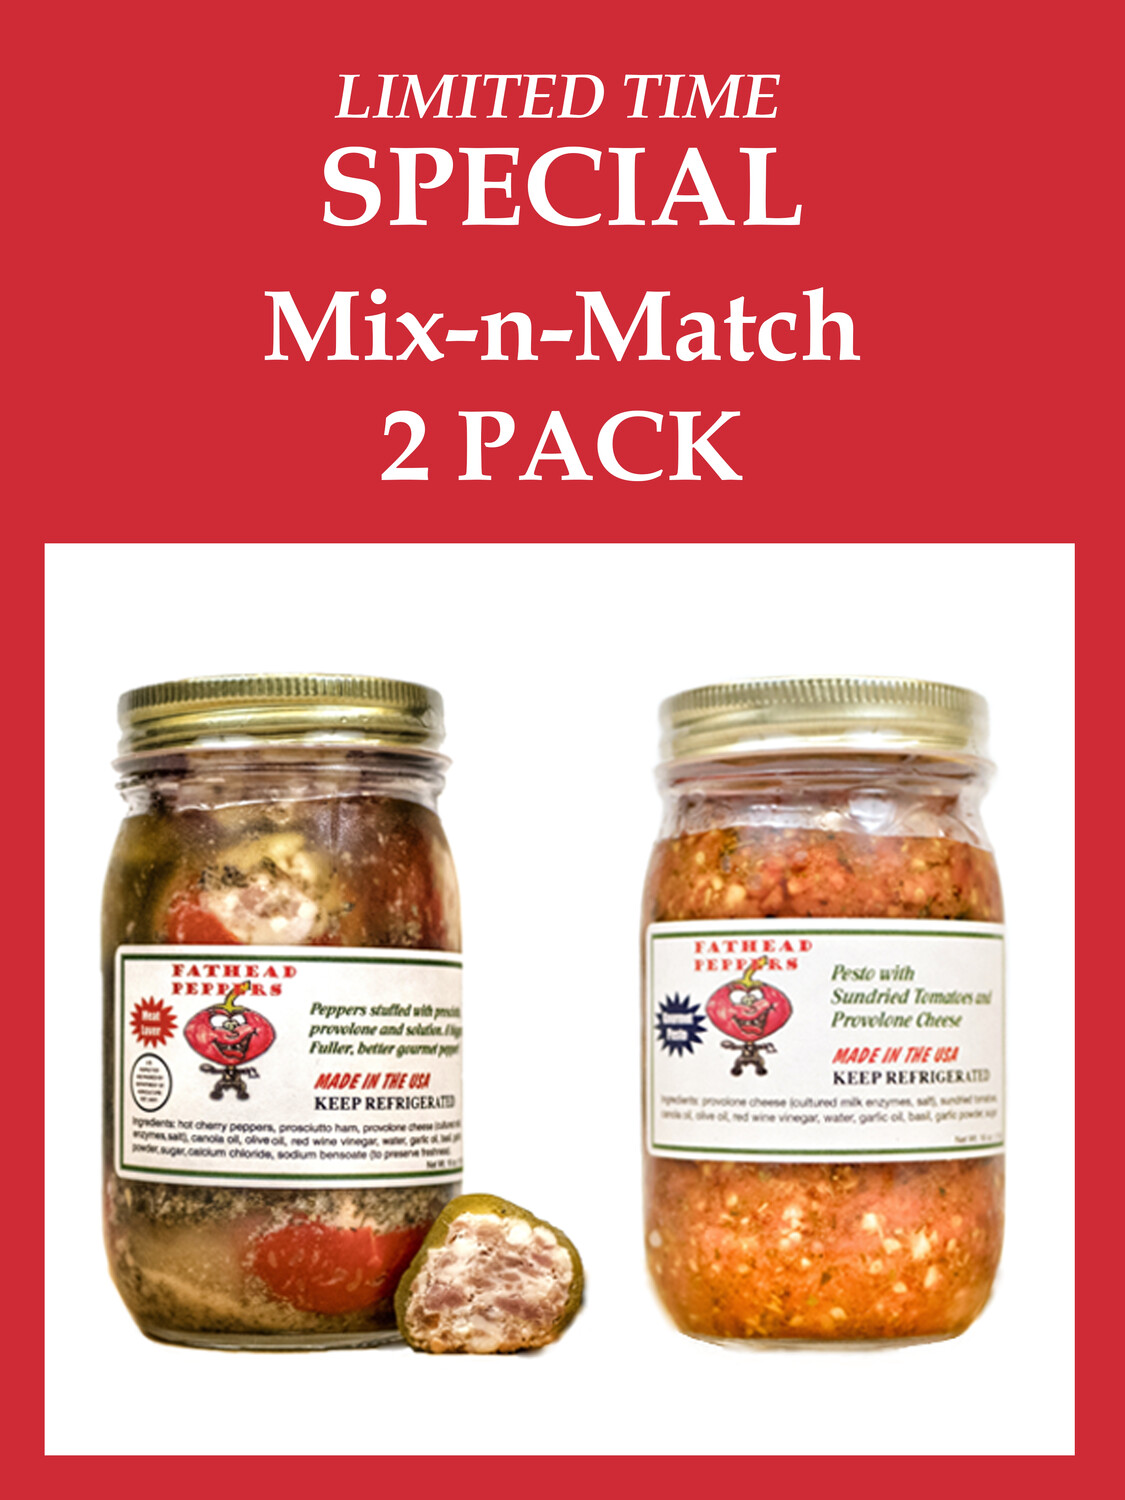 LIMITED TIME SPECIAL - Fathead Mix-n-Match 2 Pack (16 oz. Jars)